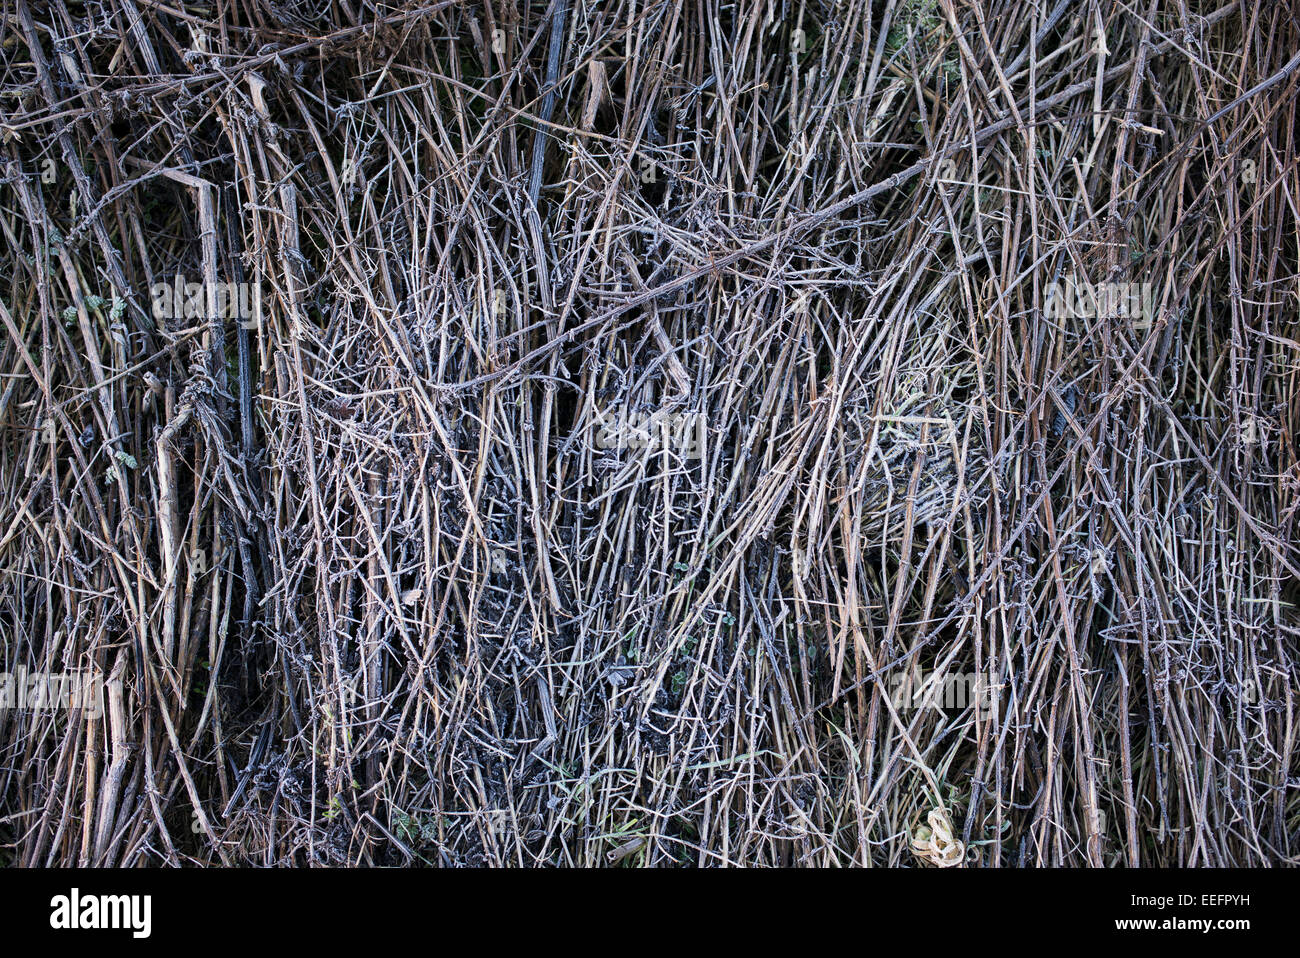 Frost covered grass stems in winter - Stock Image